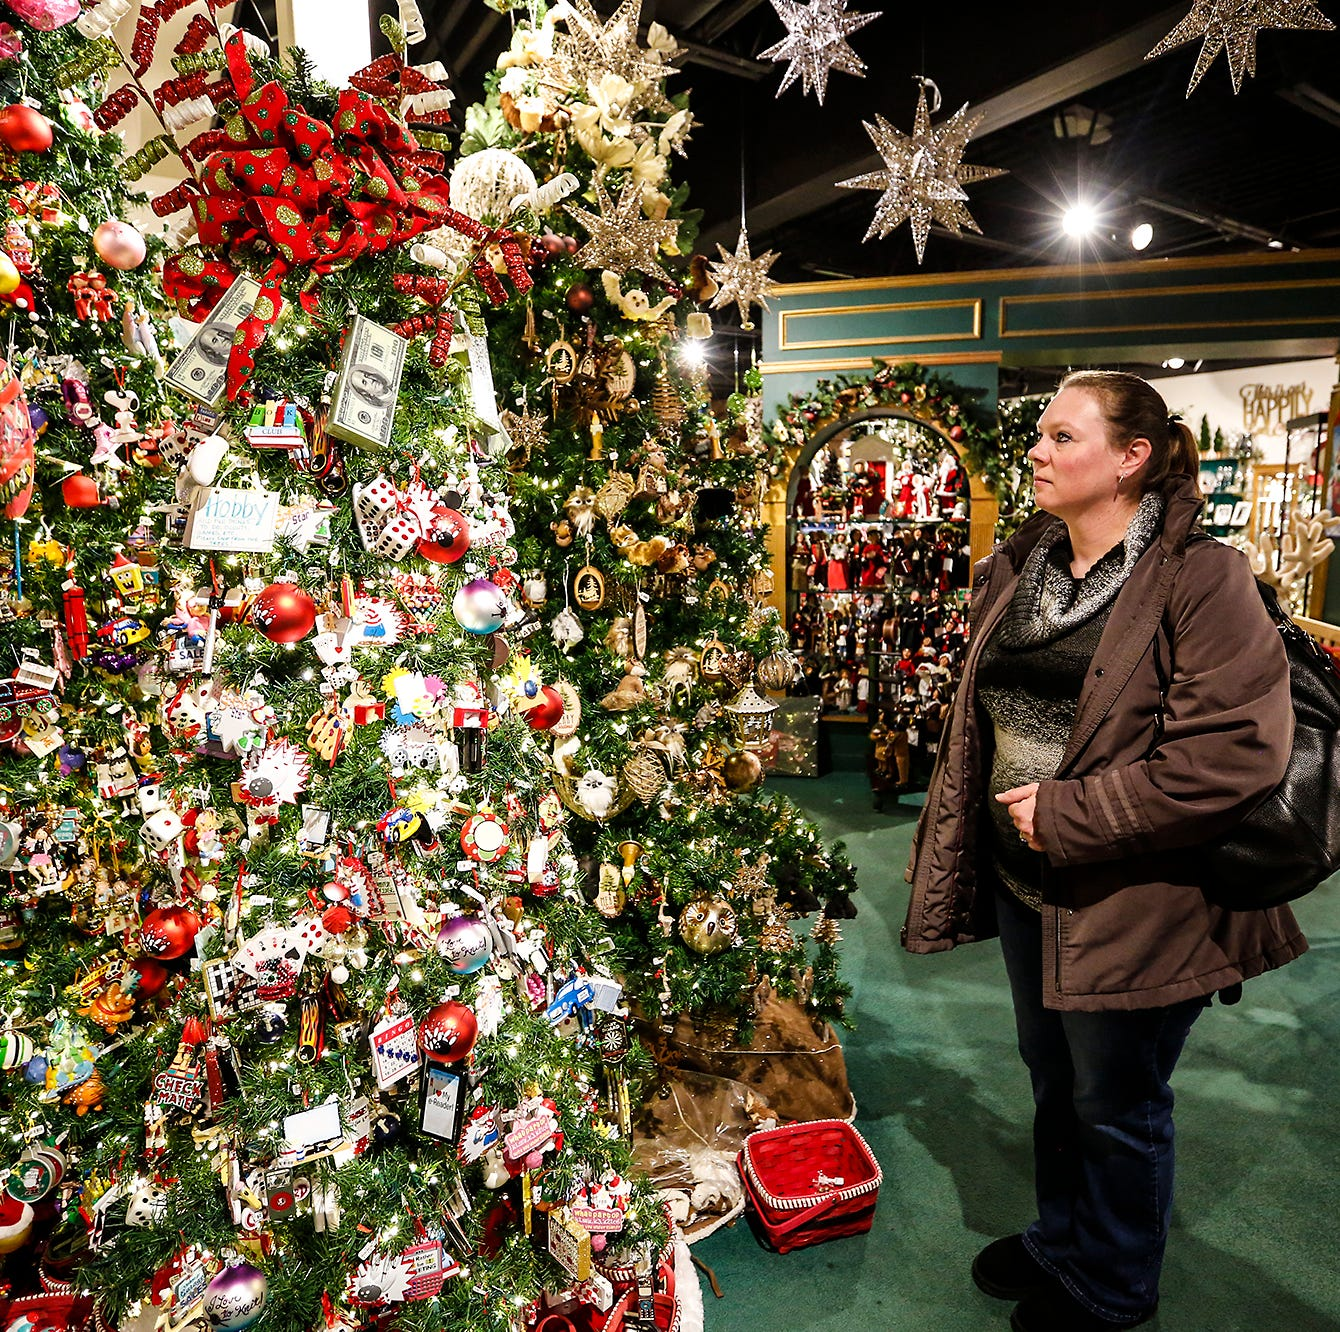 Fond du Lac Kristmas Kringle Shoppe offers Christmas spirit year-round